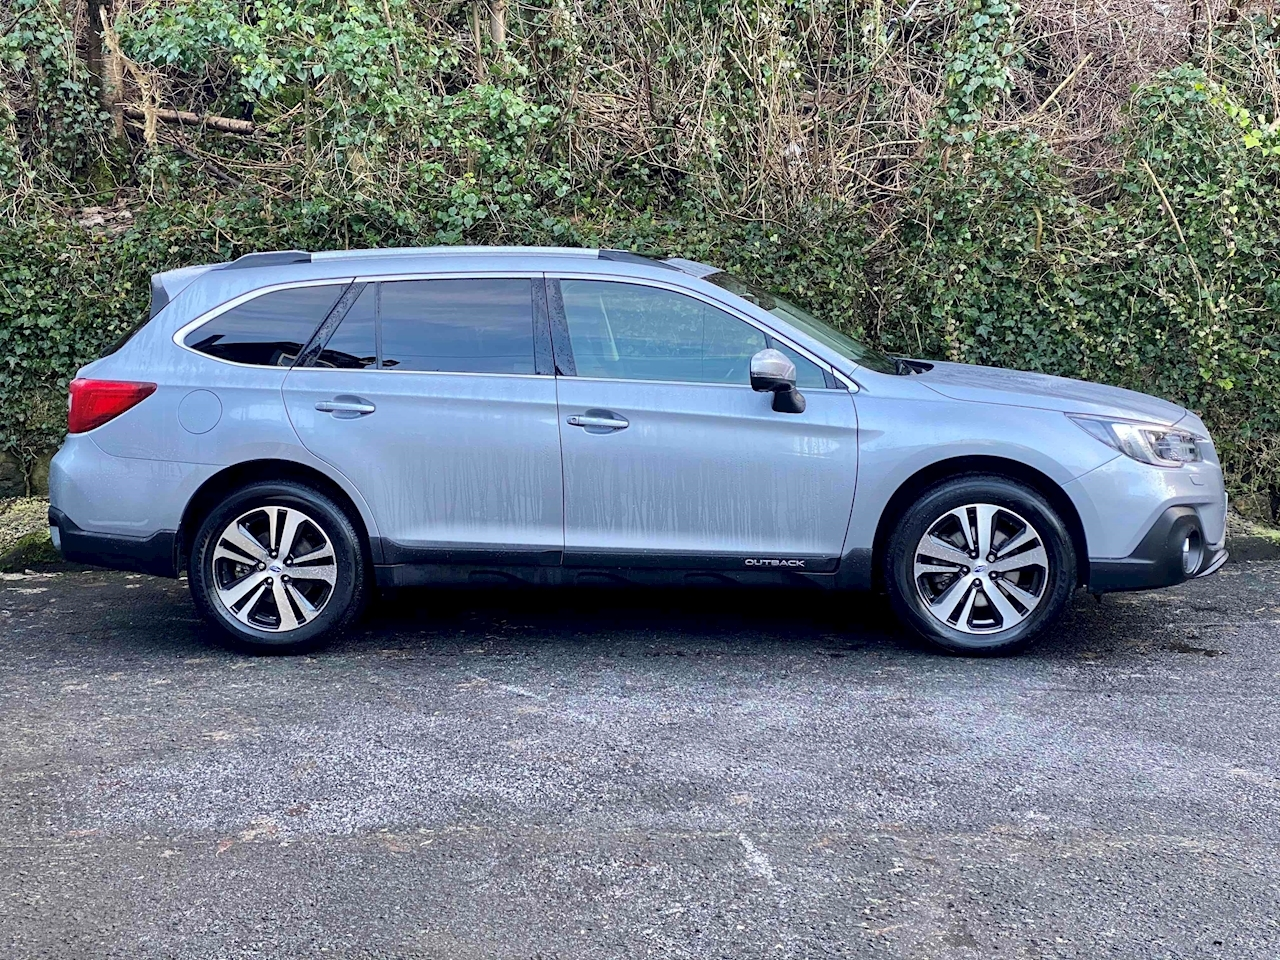 2.5i SE Premium Estate 5dr Petrol Lineartronic 4WD (s/s) (175 ps)